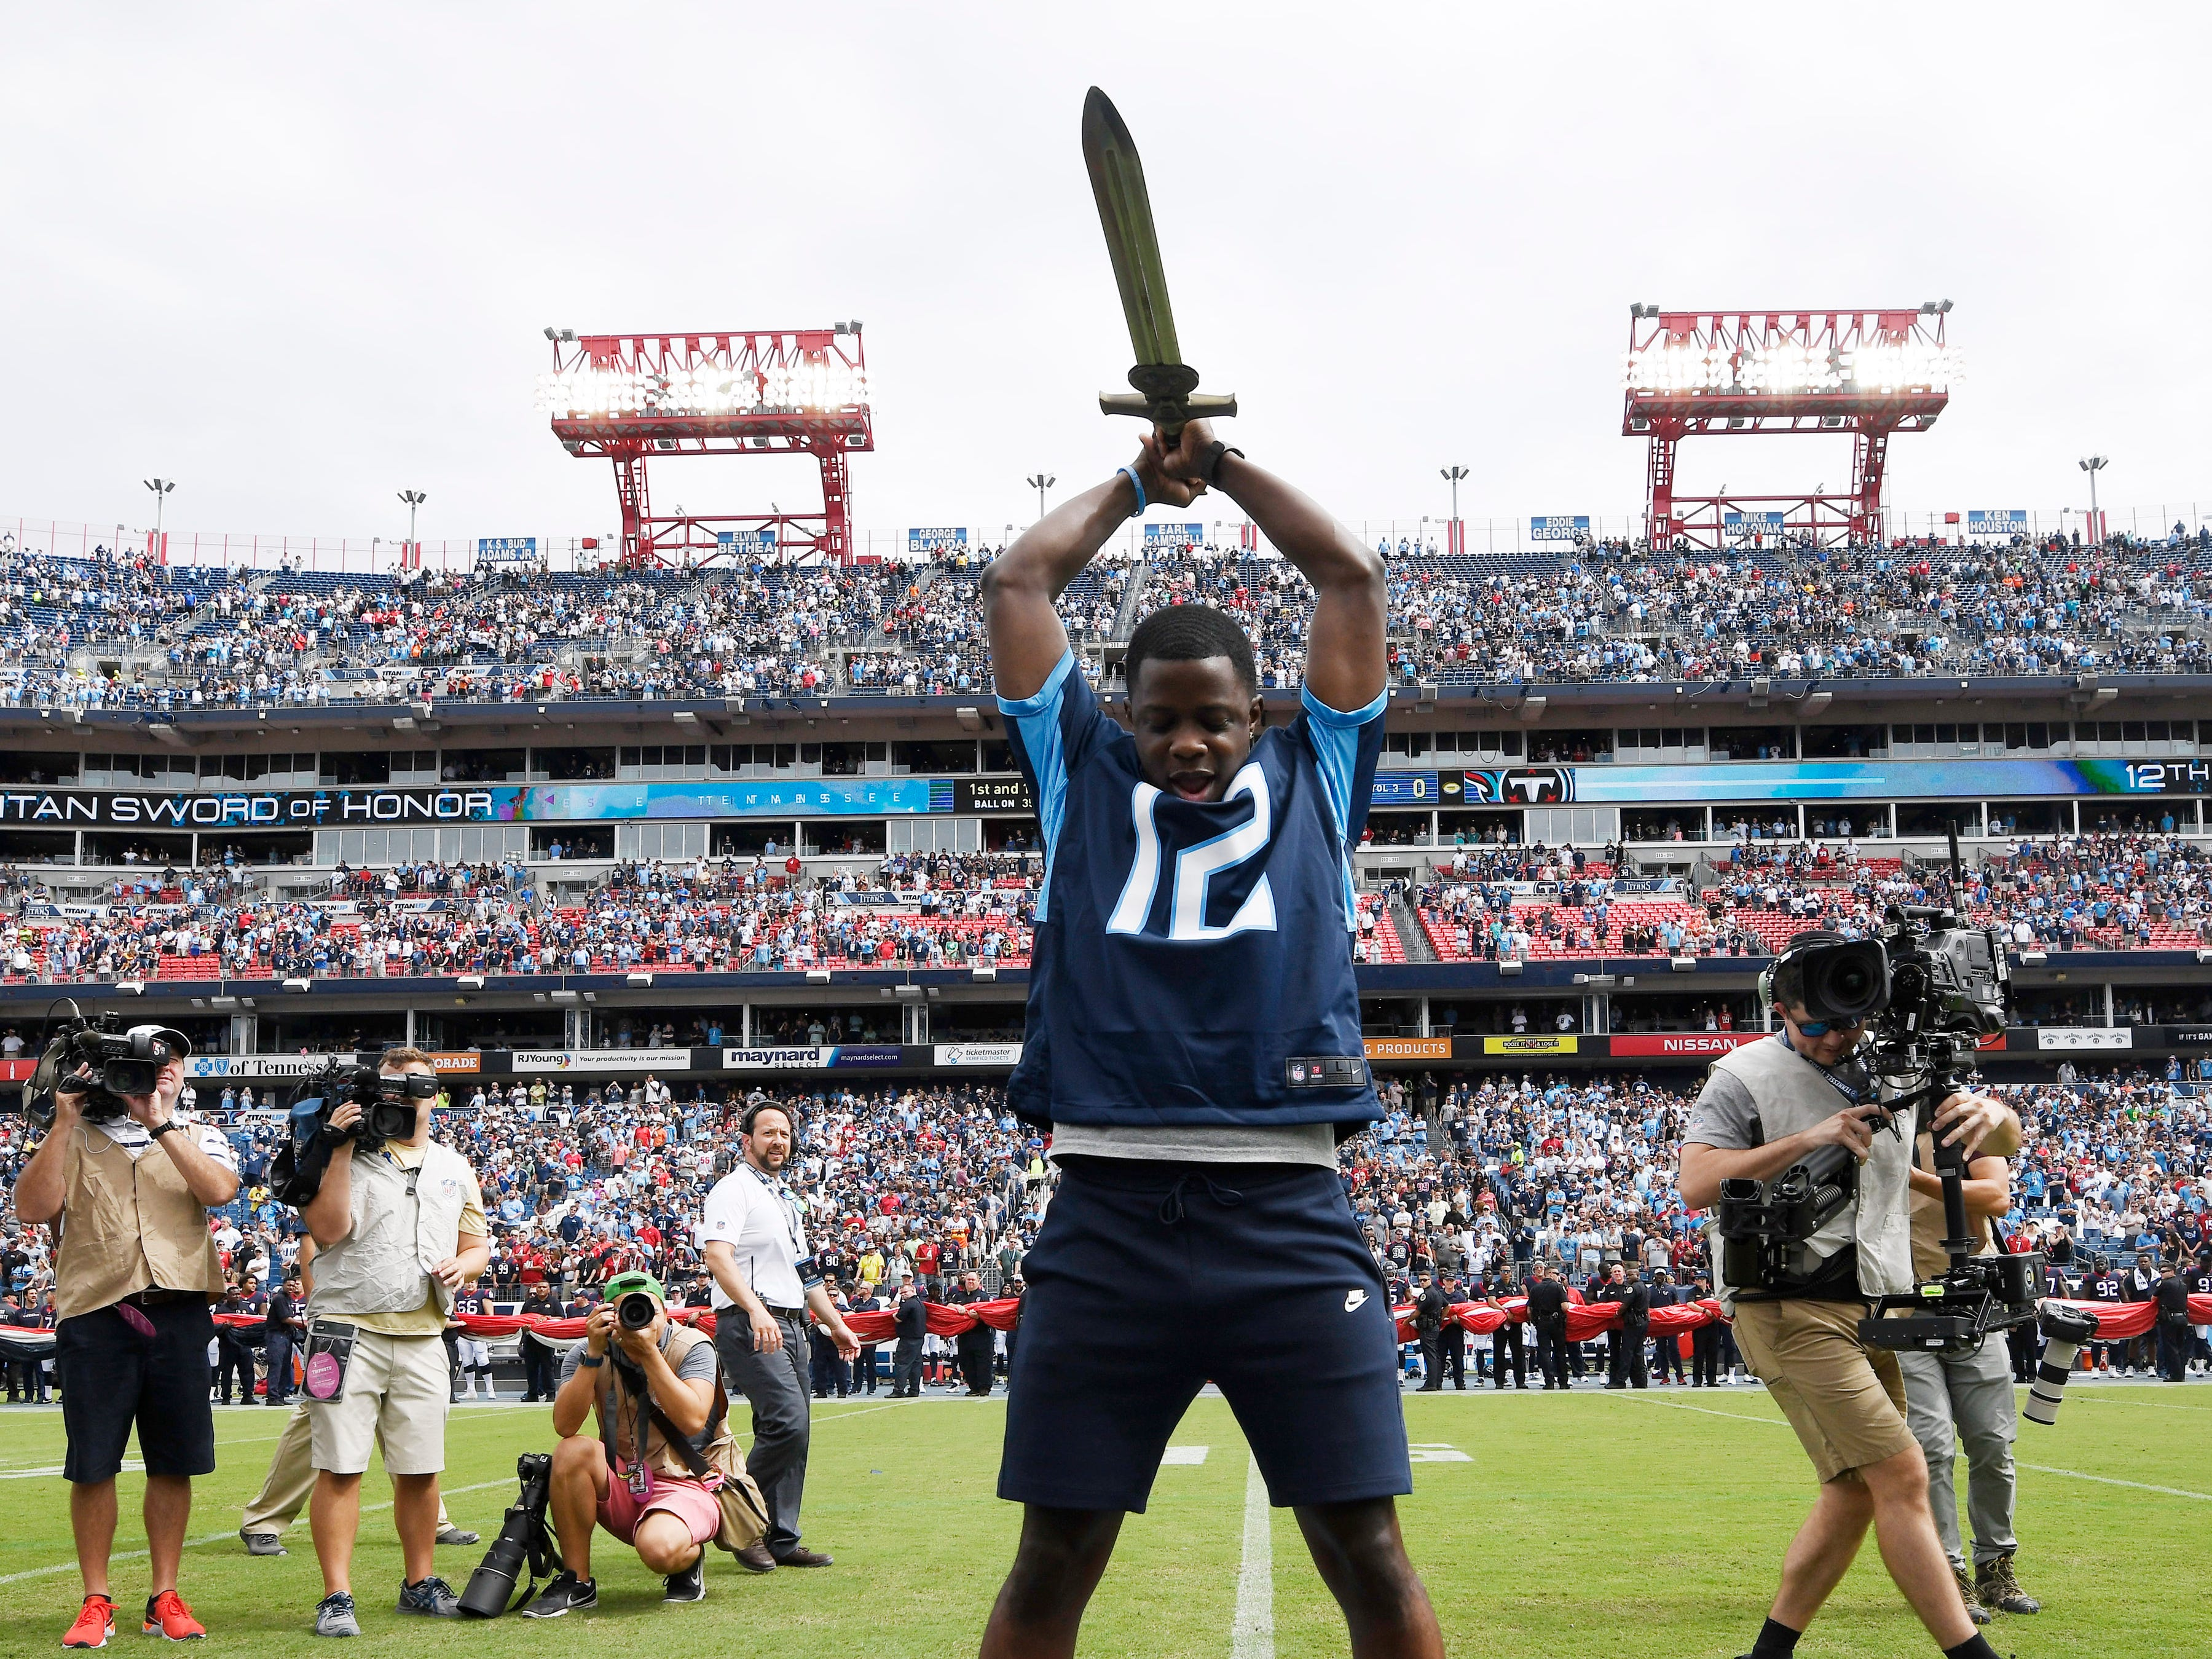 Waffle House shooting hero serves as the Titans' 12th man during pregame ceremonies at Nissan Stadium Sunday, Sept. 16, 2018, in Nashville, Tenn.